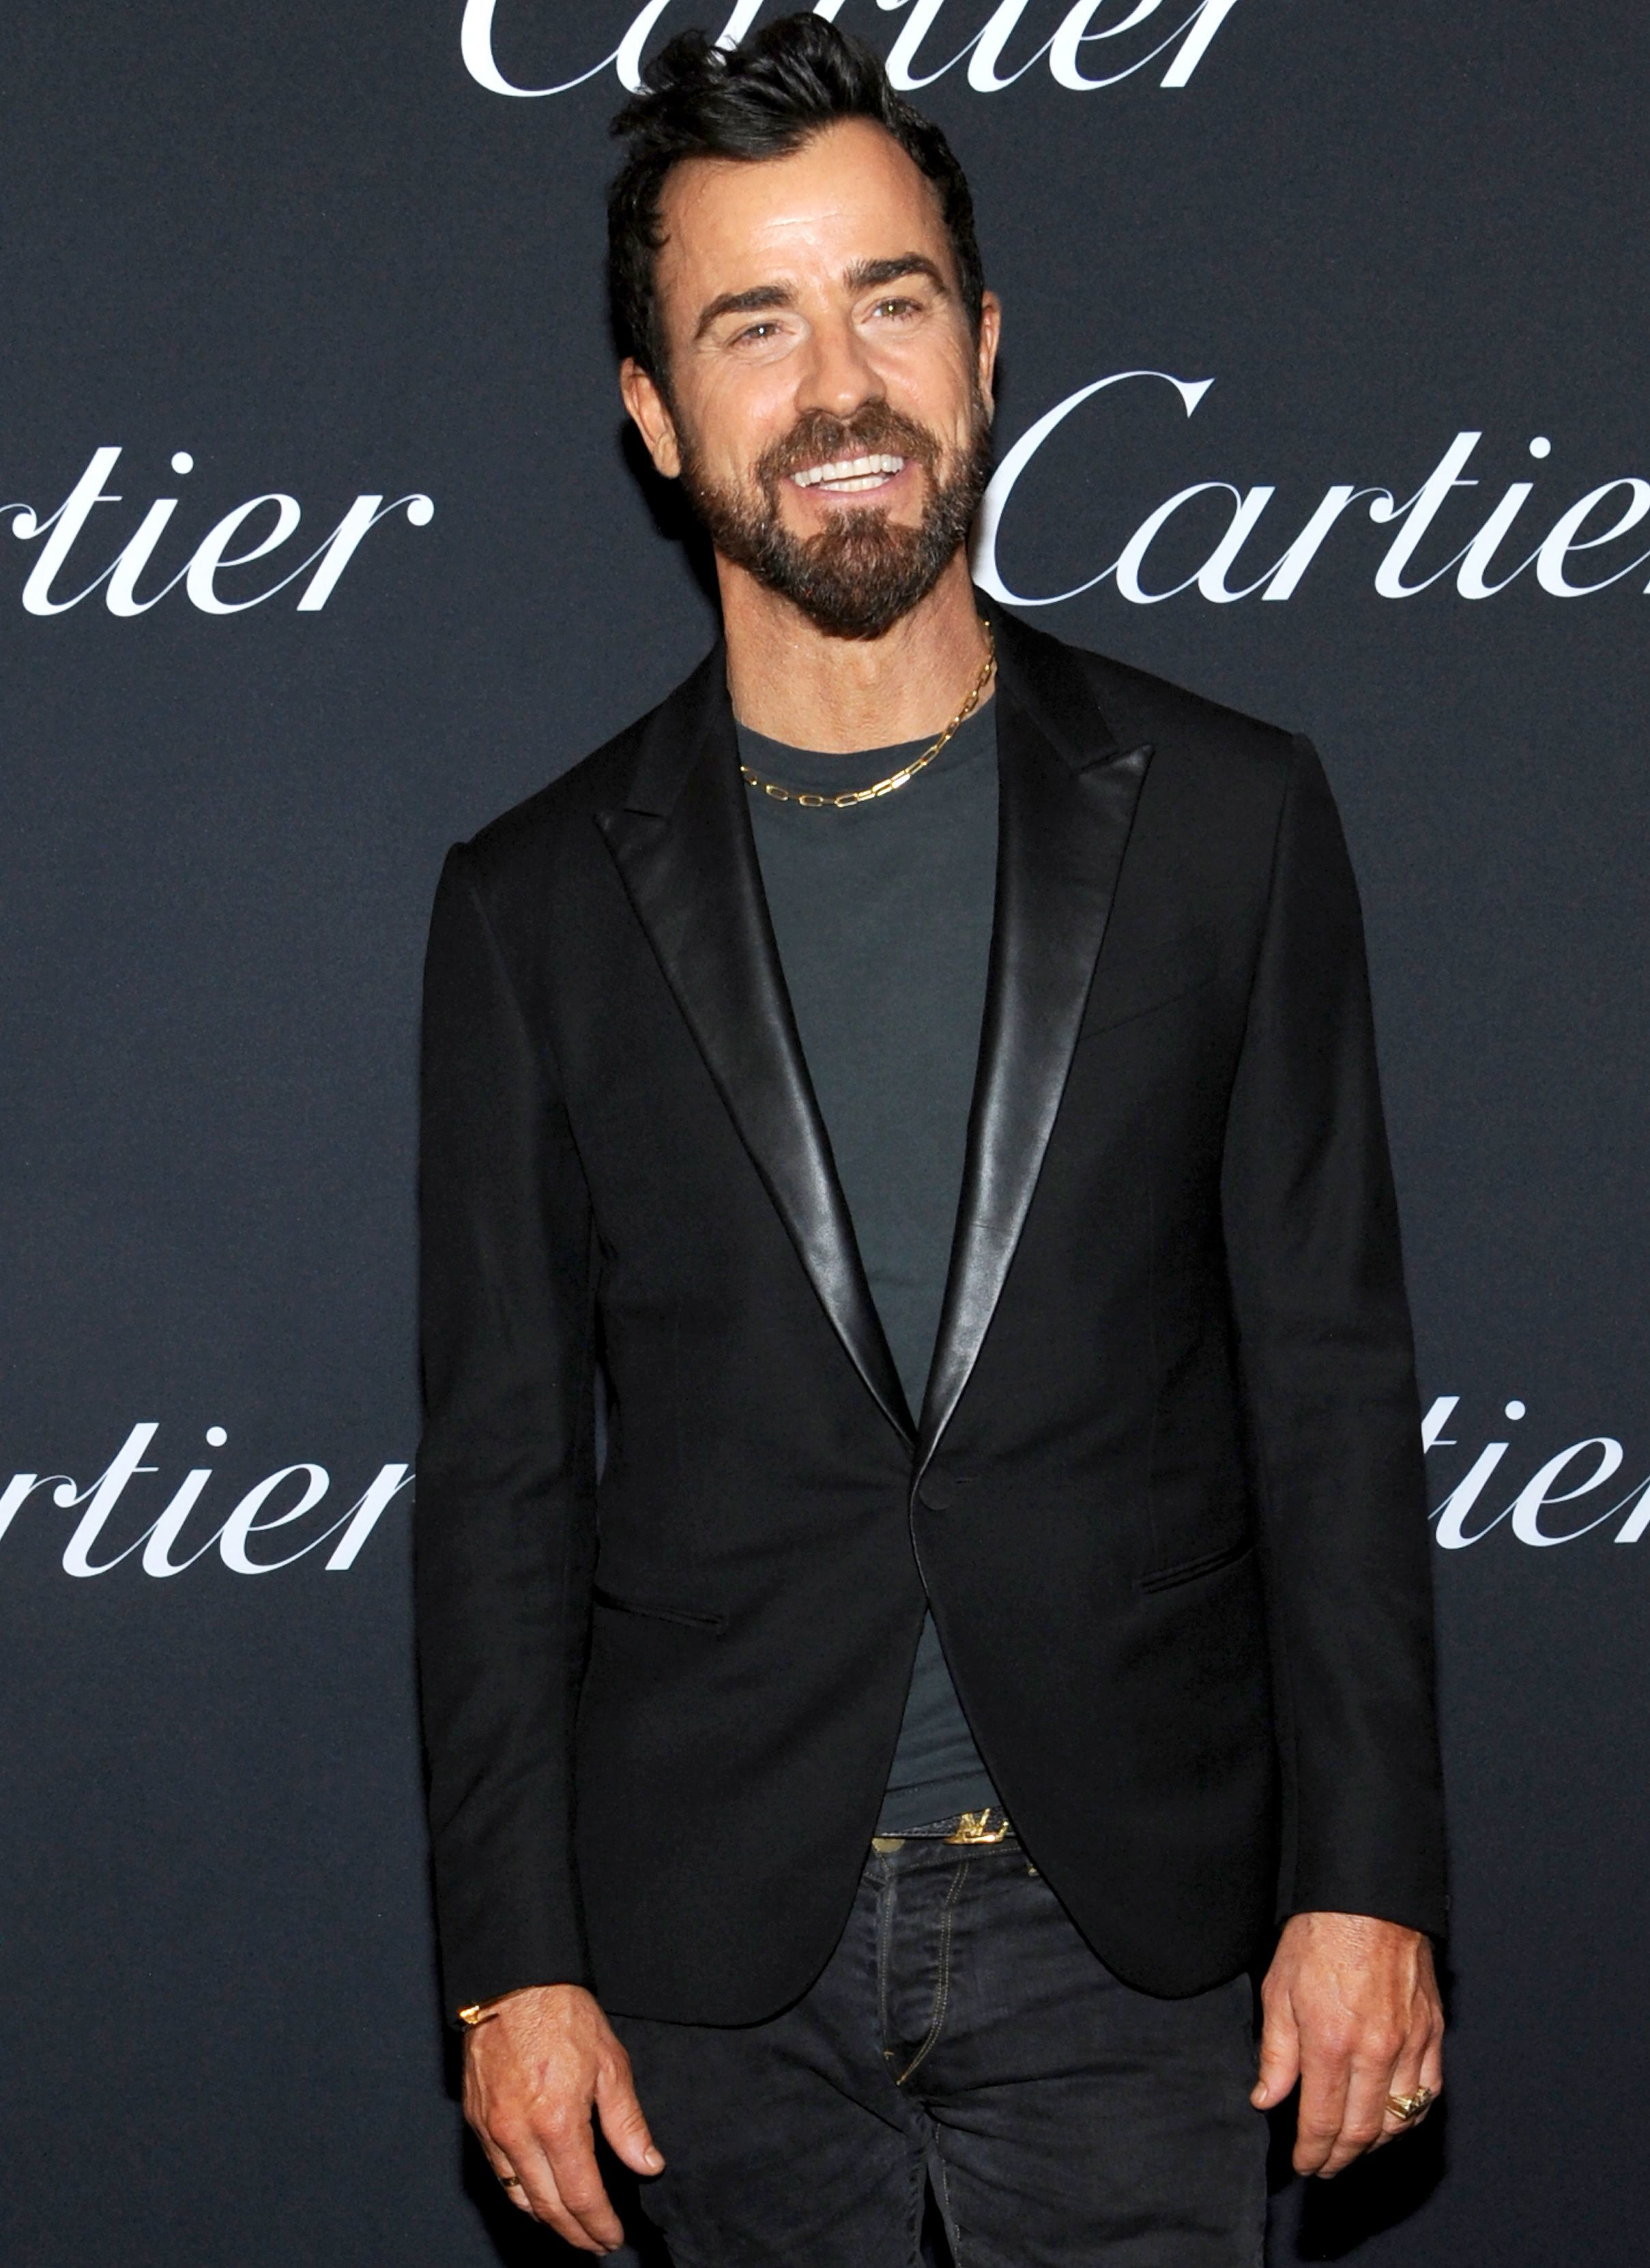 Justin Theroux attends the Cartier Precious Garage party for Spring/Summer 2019 at New York Fashion Week on Sept. 6, 2018.